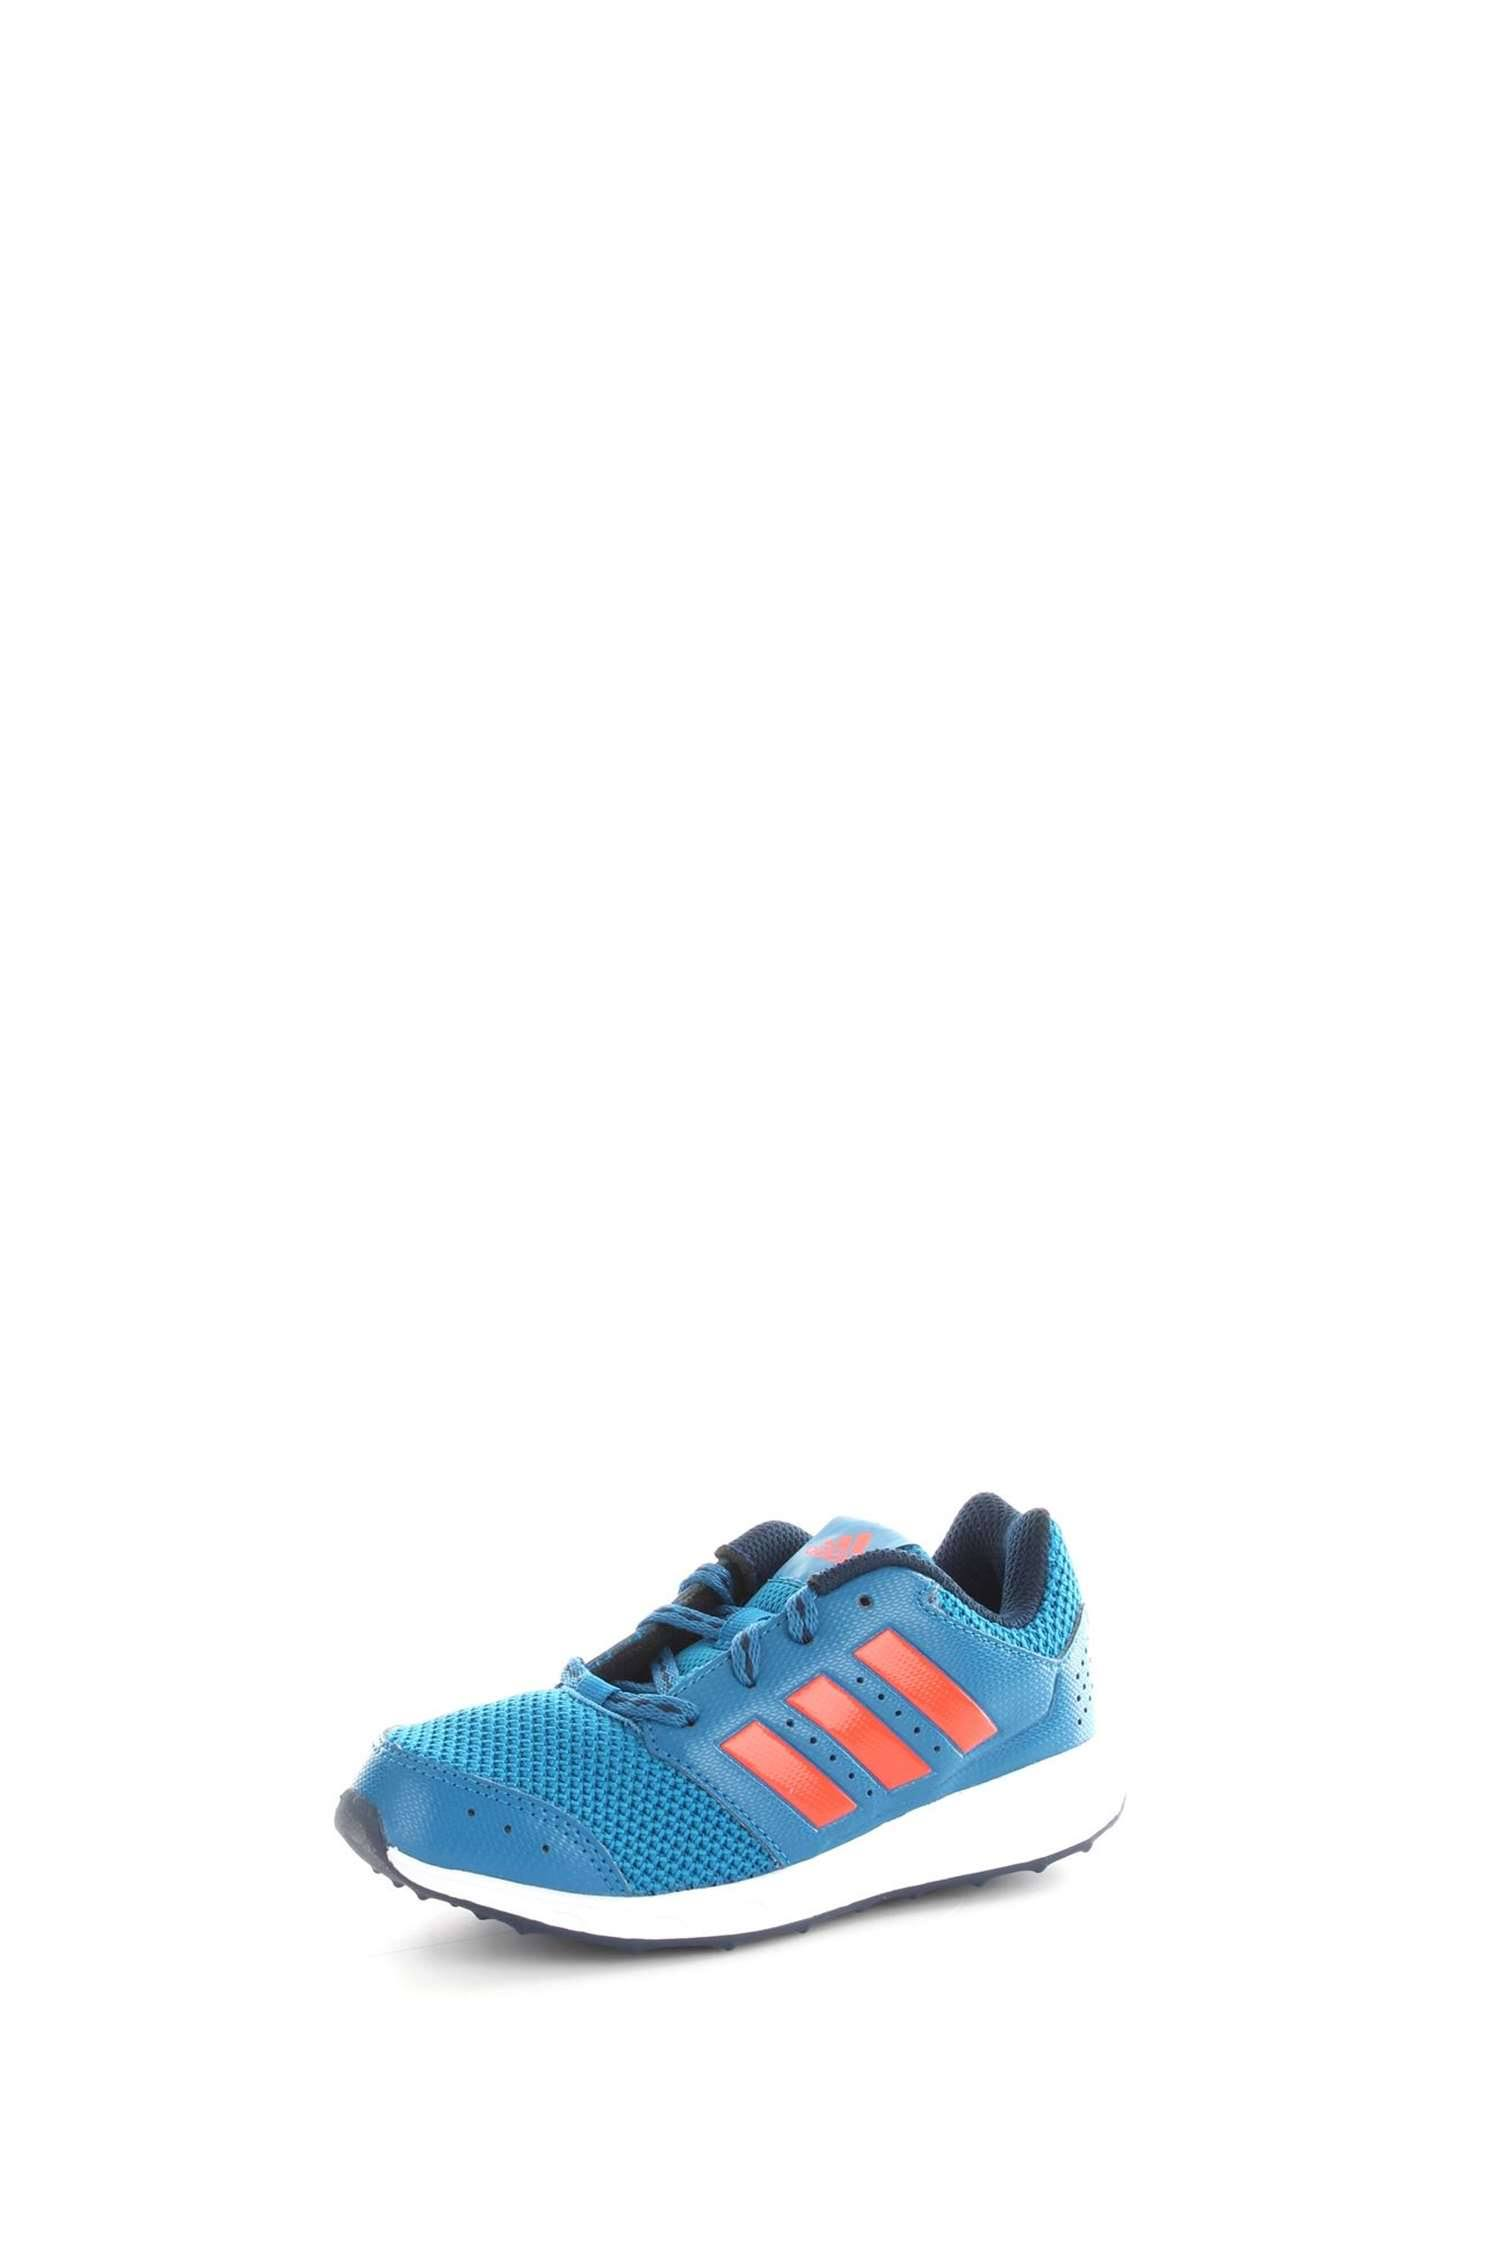 Adidas sneakers Low Child Blue